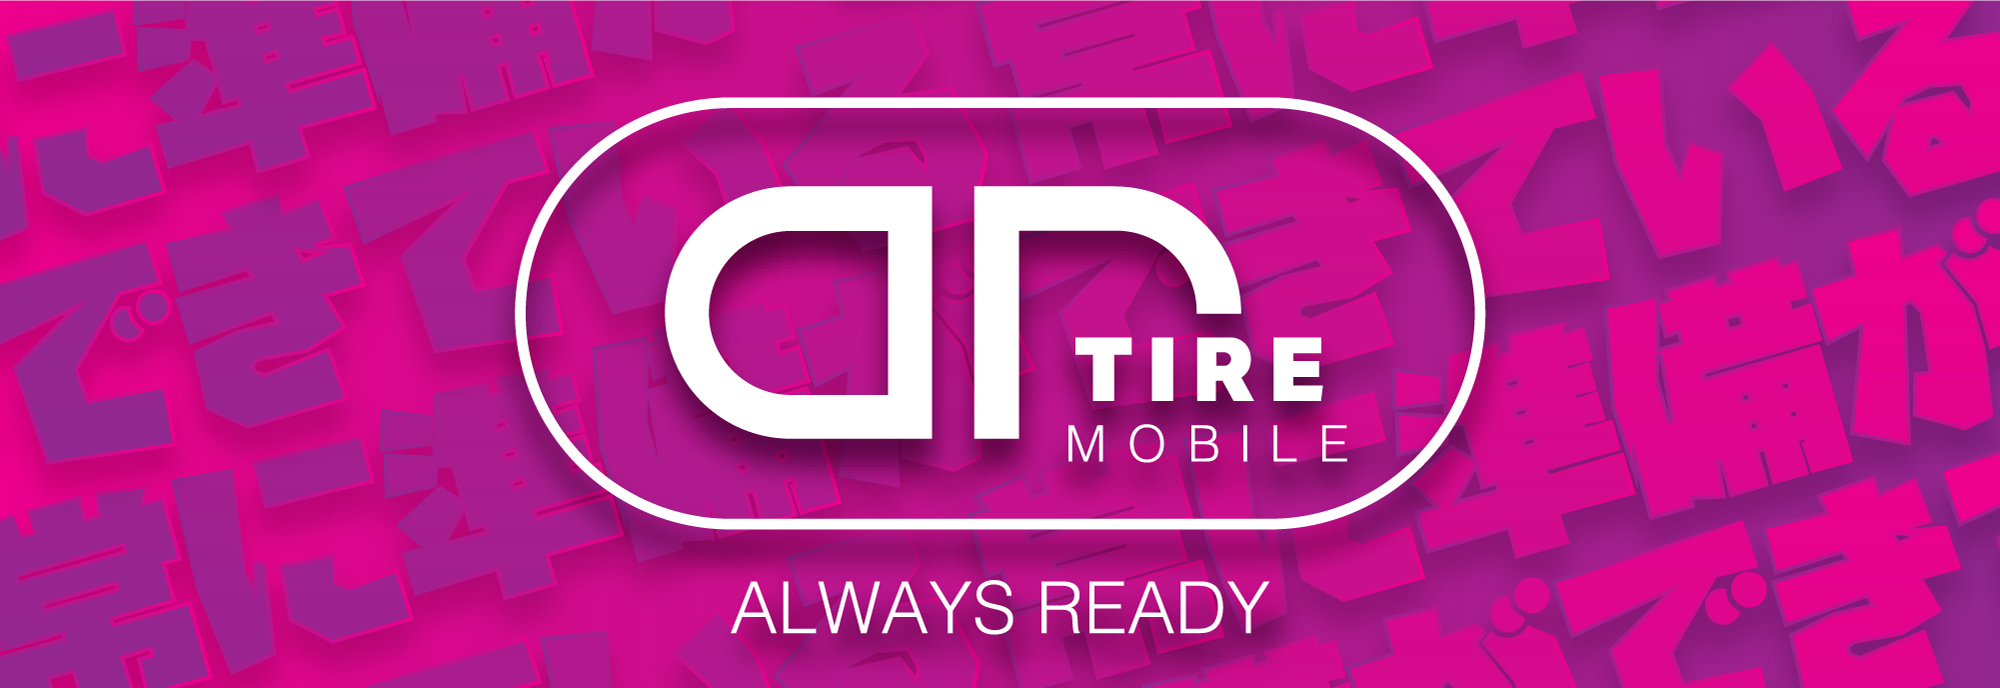 AR-MOBILE-TIRE-PINK-JAPANESE (1).png